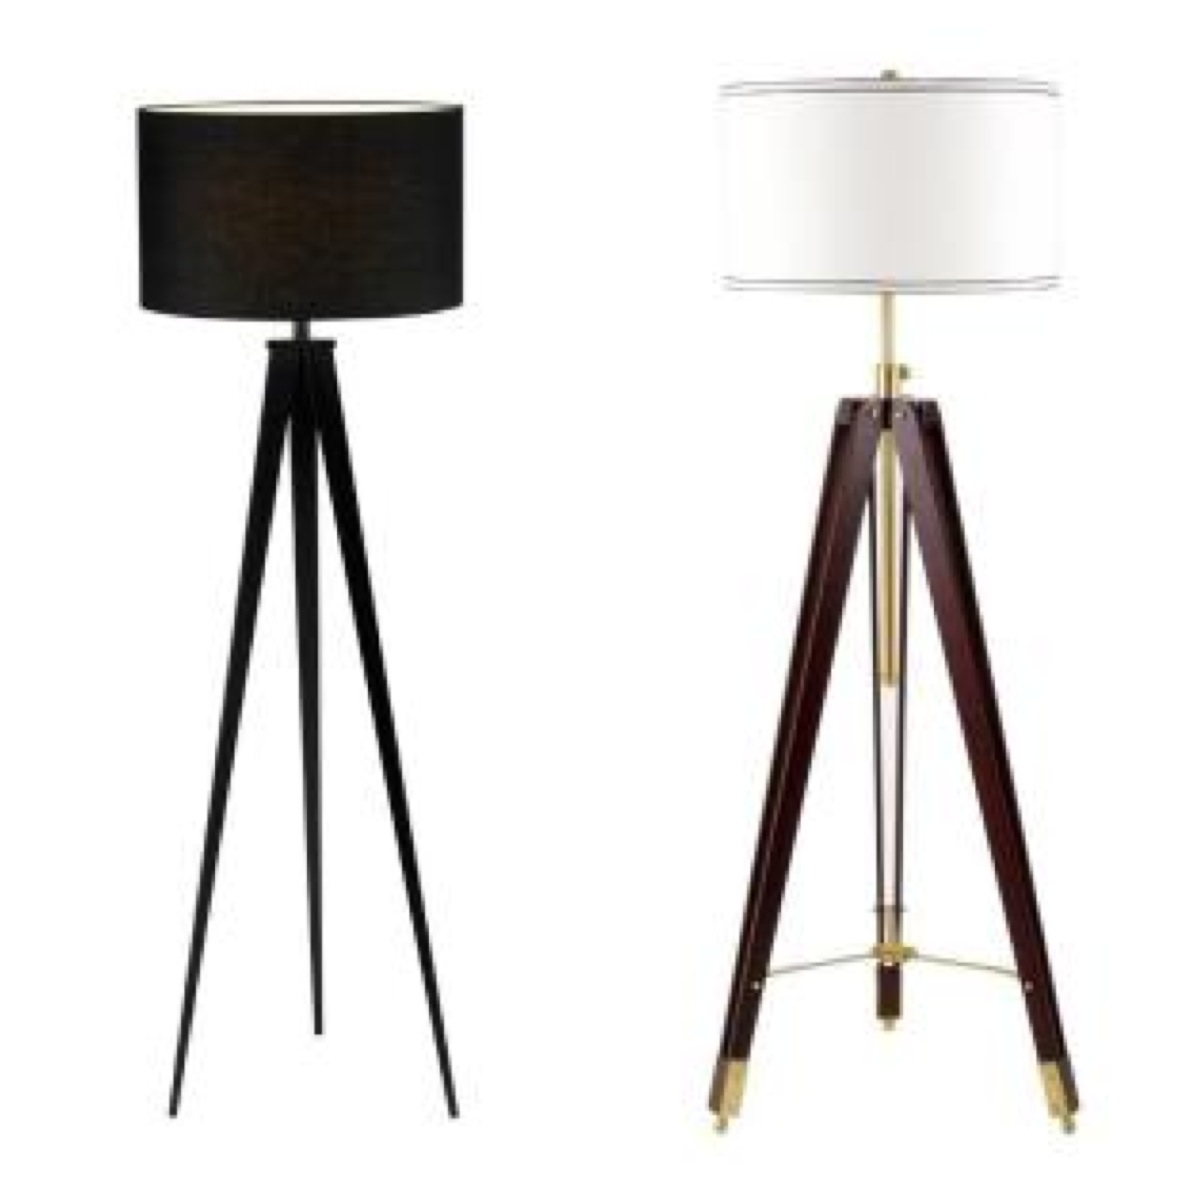 Live laugh decorate standing on three legs my obsession for 4 legged wooden floor lamp